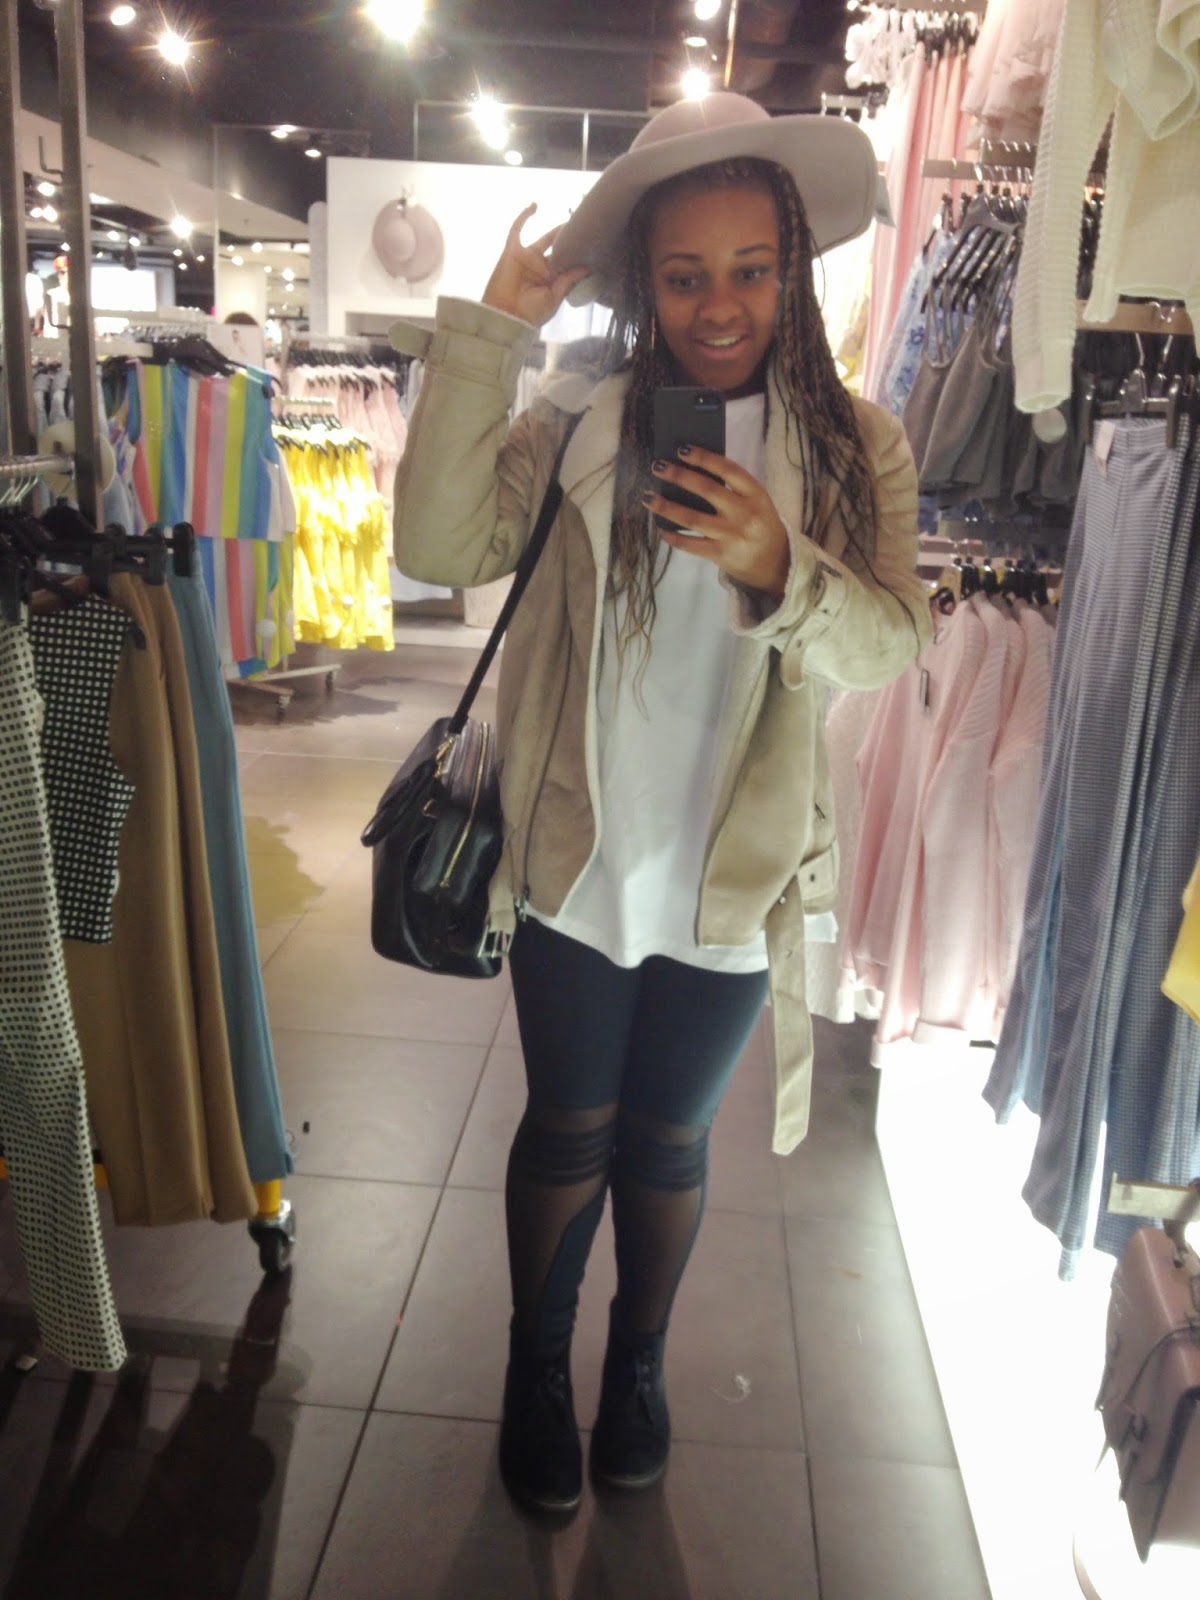 HM Aviator Jacket ASOS Massive White T-Shirt Mesh Sporty Leggings Clarks Desert Boots